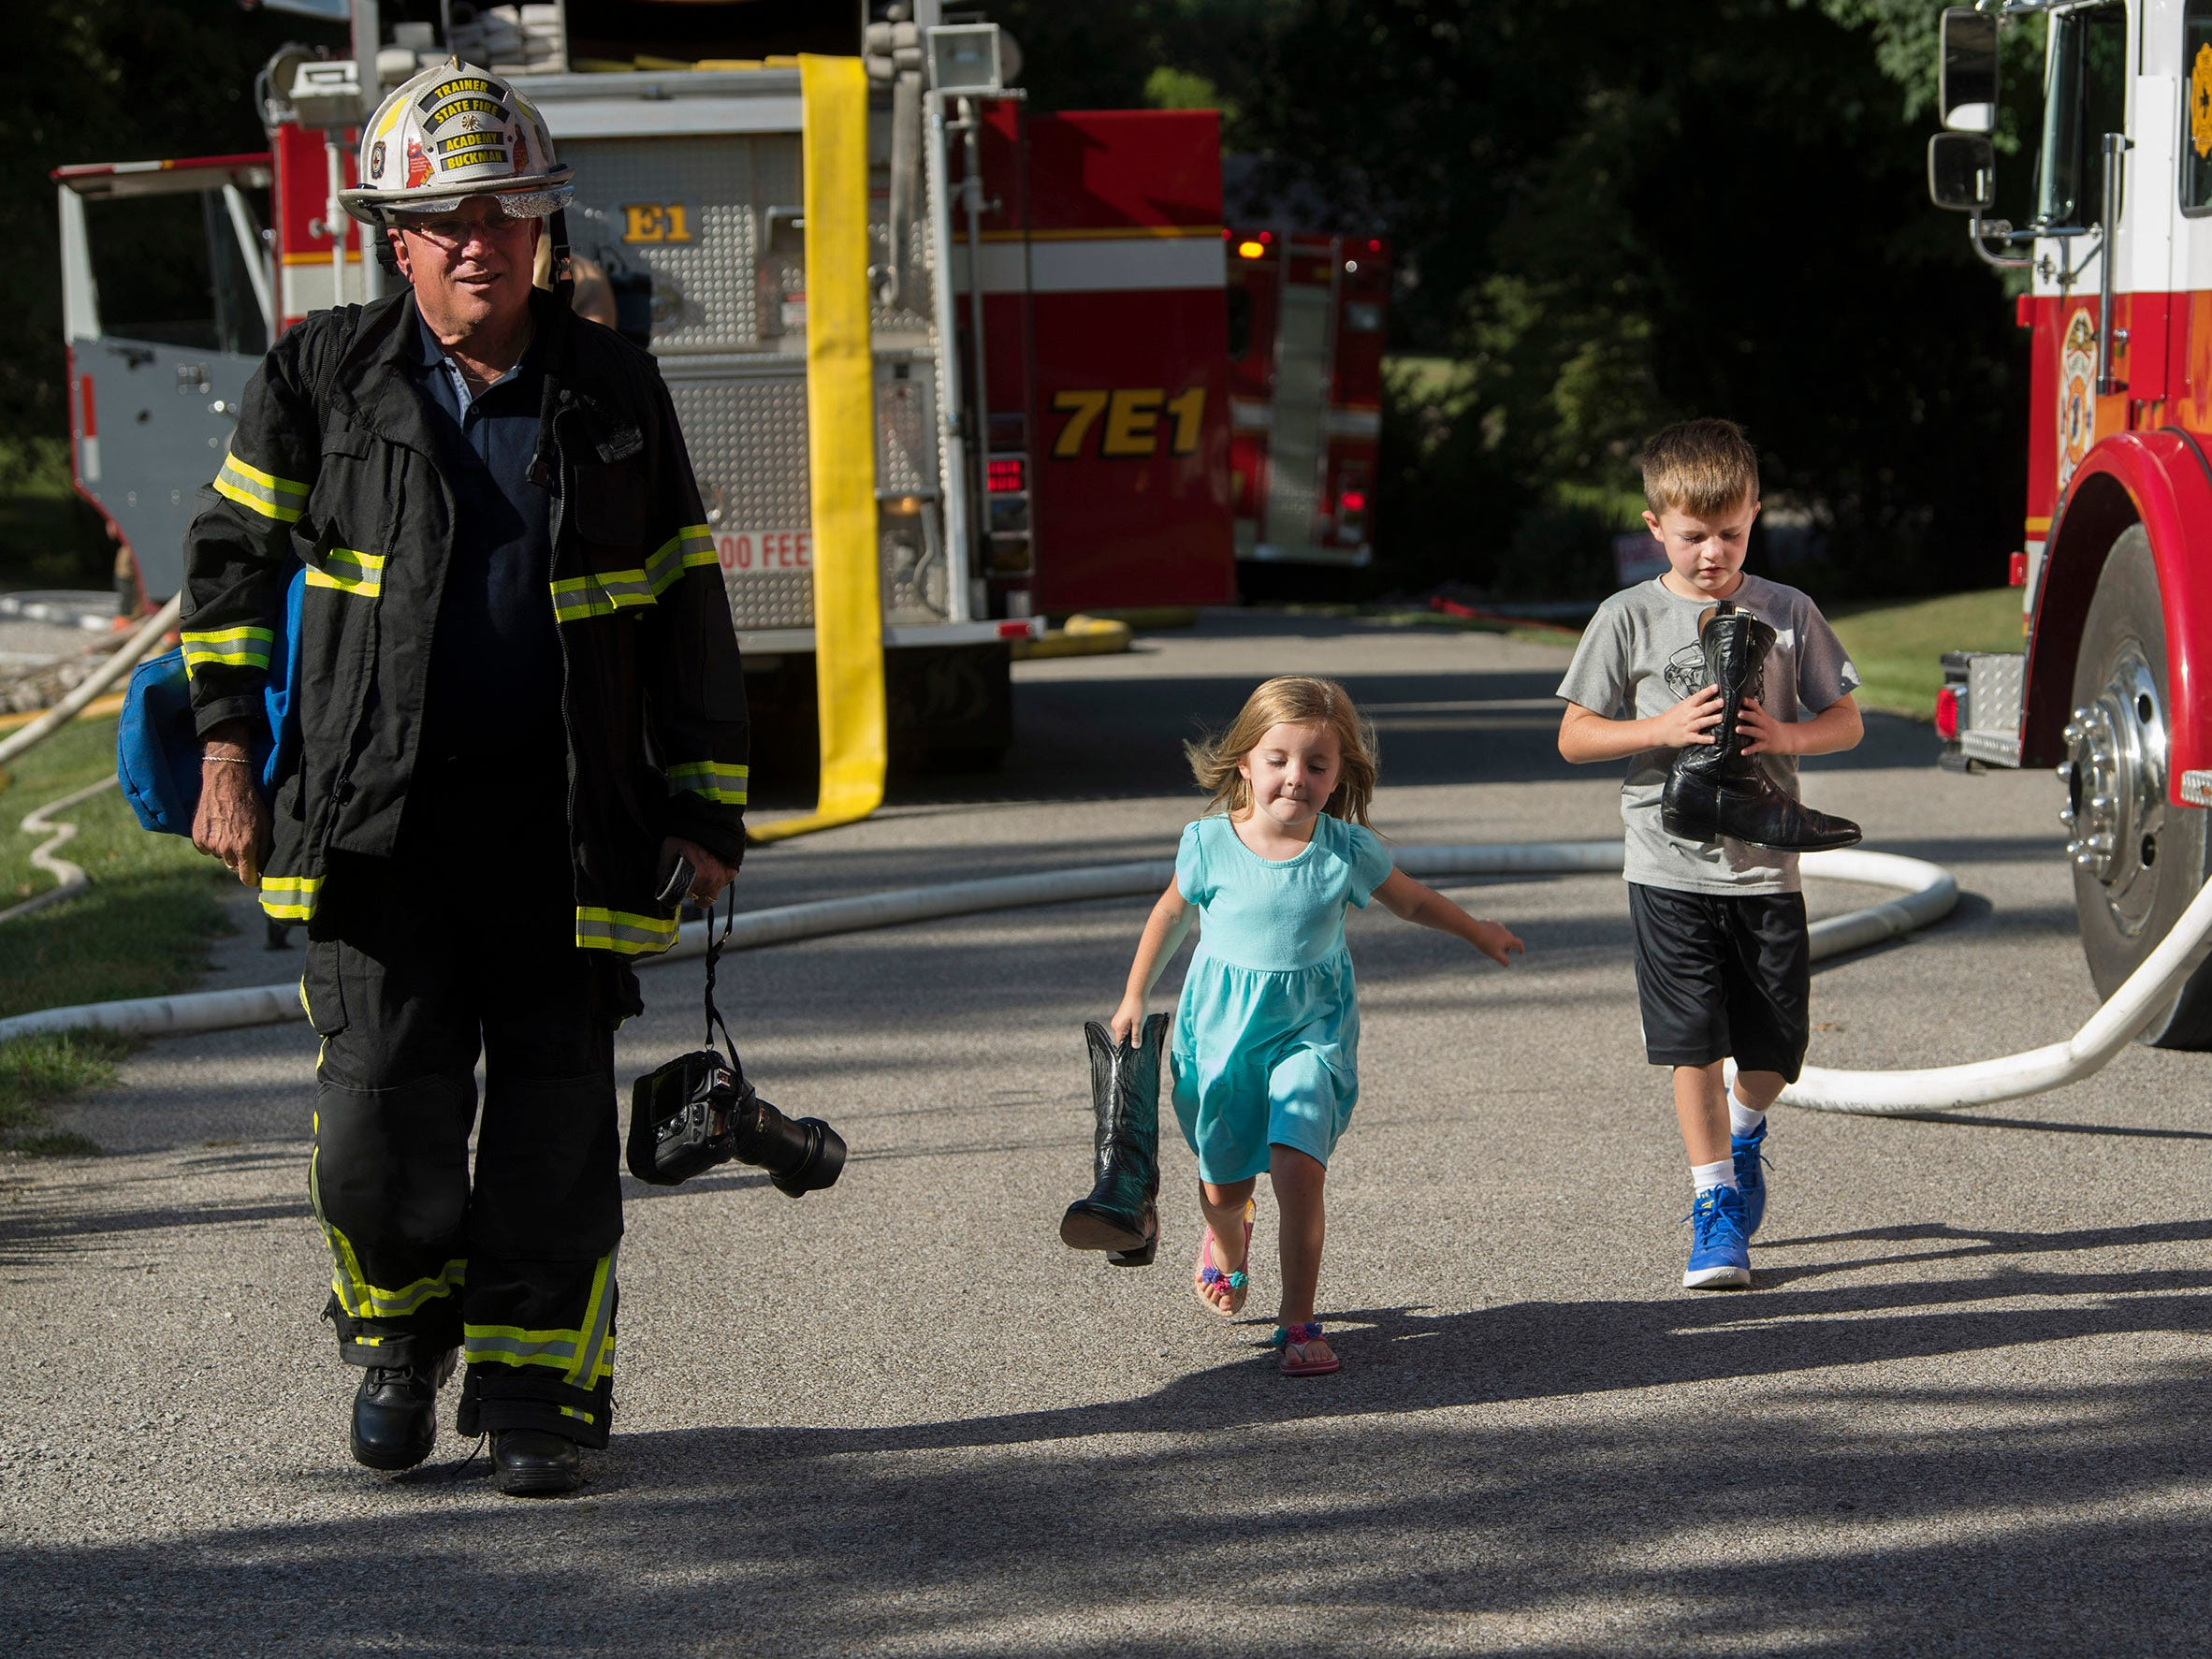 "John Buckman, left, a chief retired after 35 years with the German Township Fire Department, heads back to his vehicle with his grandkids, Kate, 5, and Nicholas Wood, 8, hauling his cowboy boots from a fire at 630 Marlene Drive in Evansville Tuesday evening. ""We were at the bank when I heard the second alarm fire,"" Buckman said of their delayed date at McDonald's for ice cream. ""I said, 'Kids, we're going to go see the fire first. See if we can help.' It's the life of a volunteer firefighter,"" he continued. ""You drop what you're doing and go help people."" (Shot 8/28/18)"